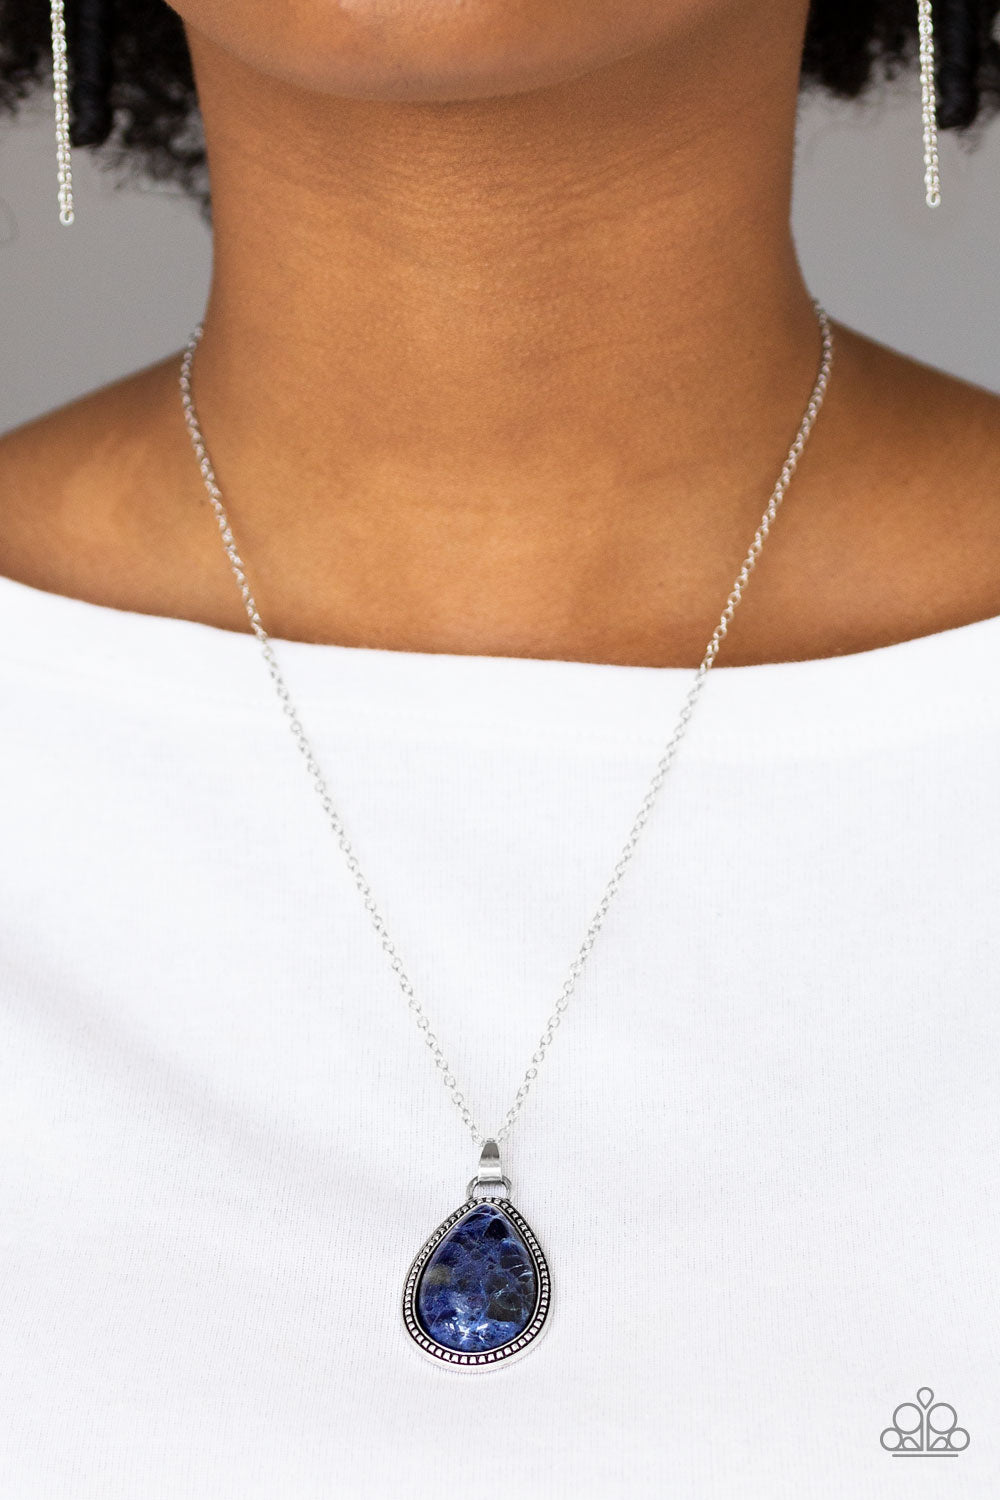 On The Home FRONTIER - Blue Paparazzi Necklace - Pink Dragon Jewels